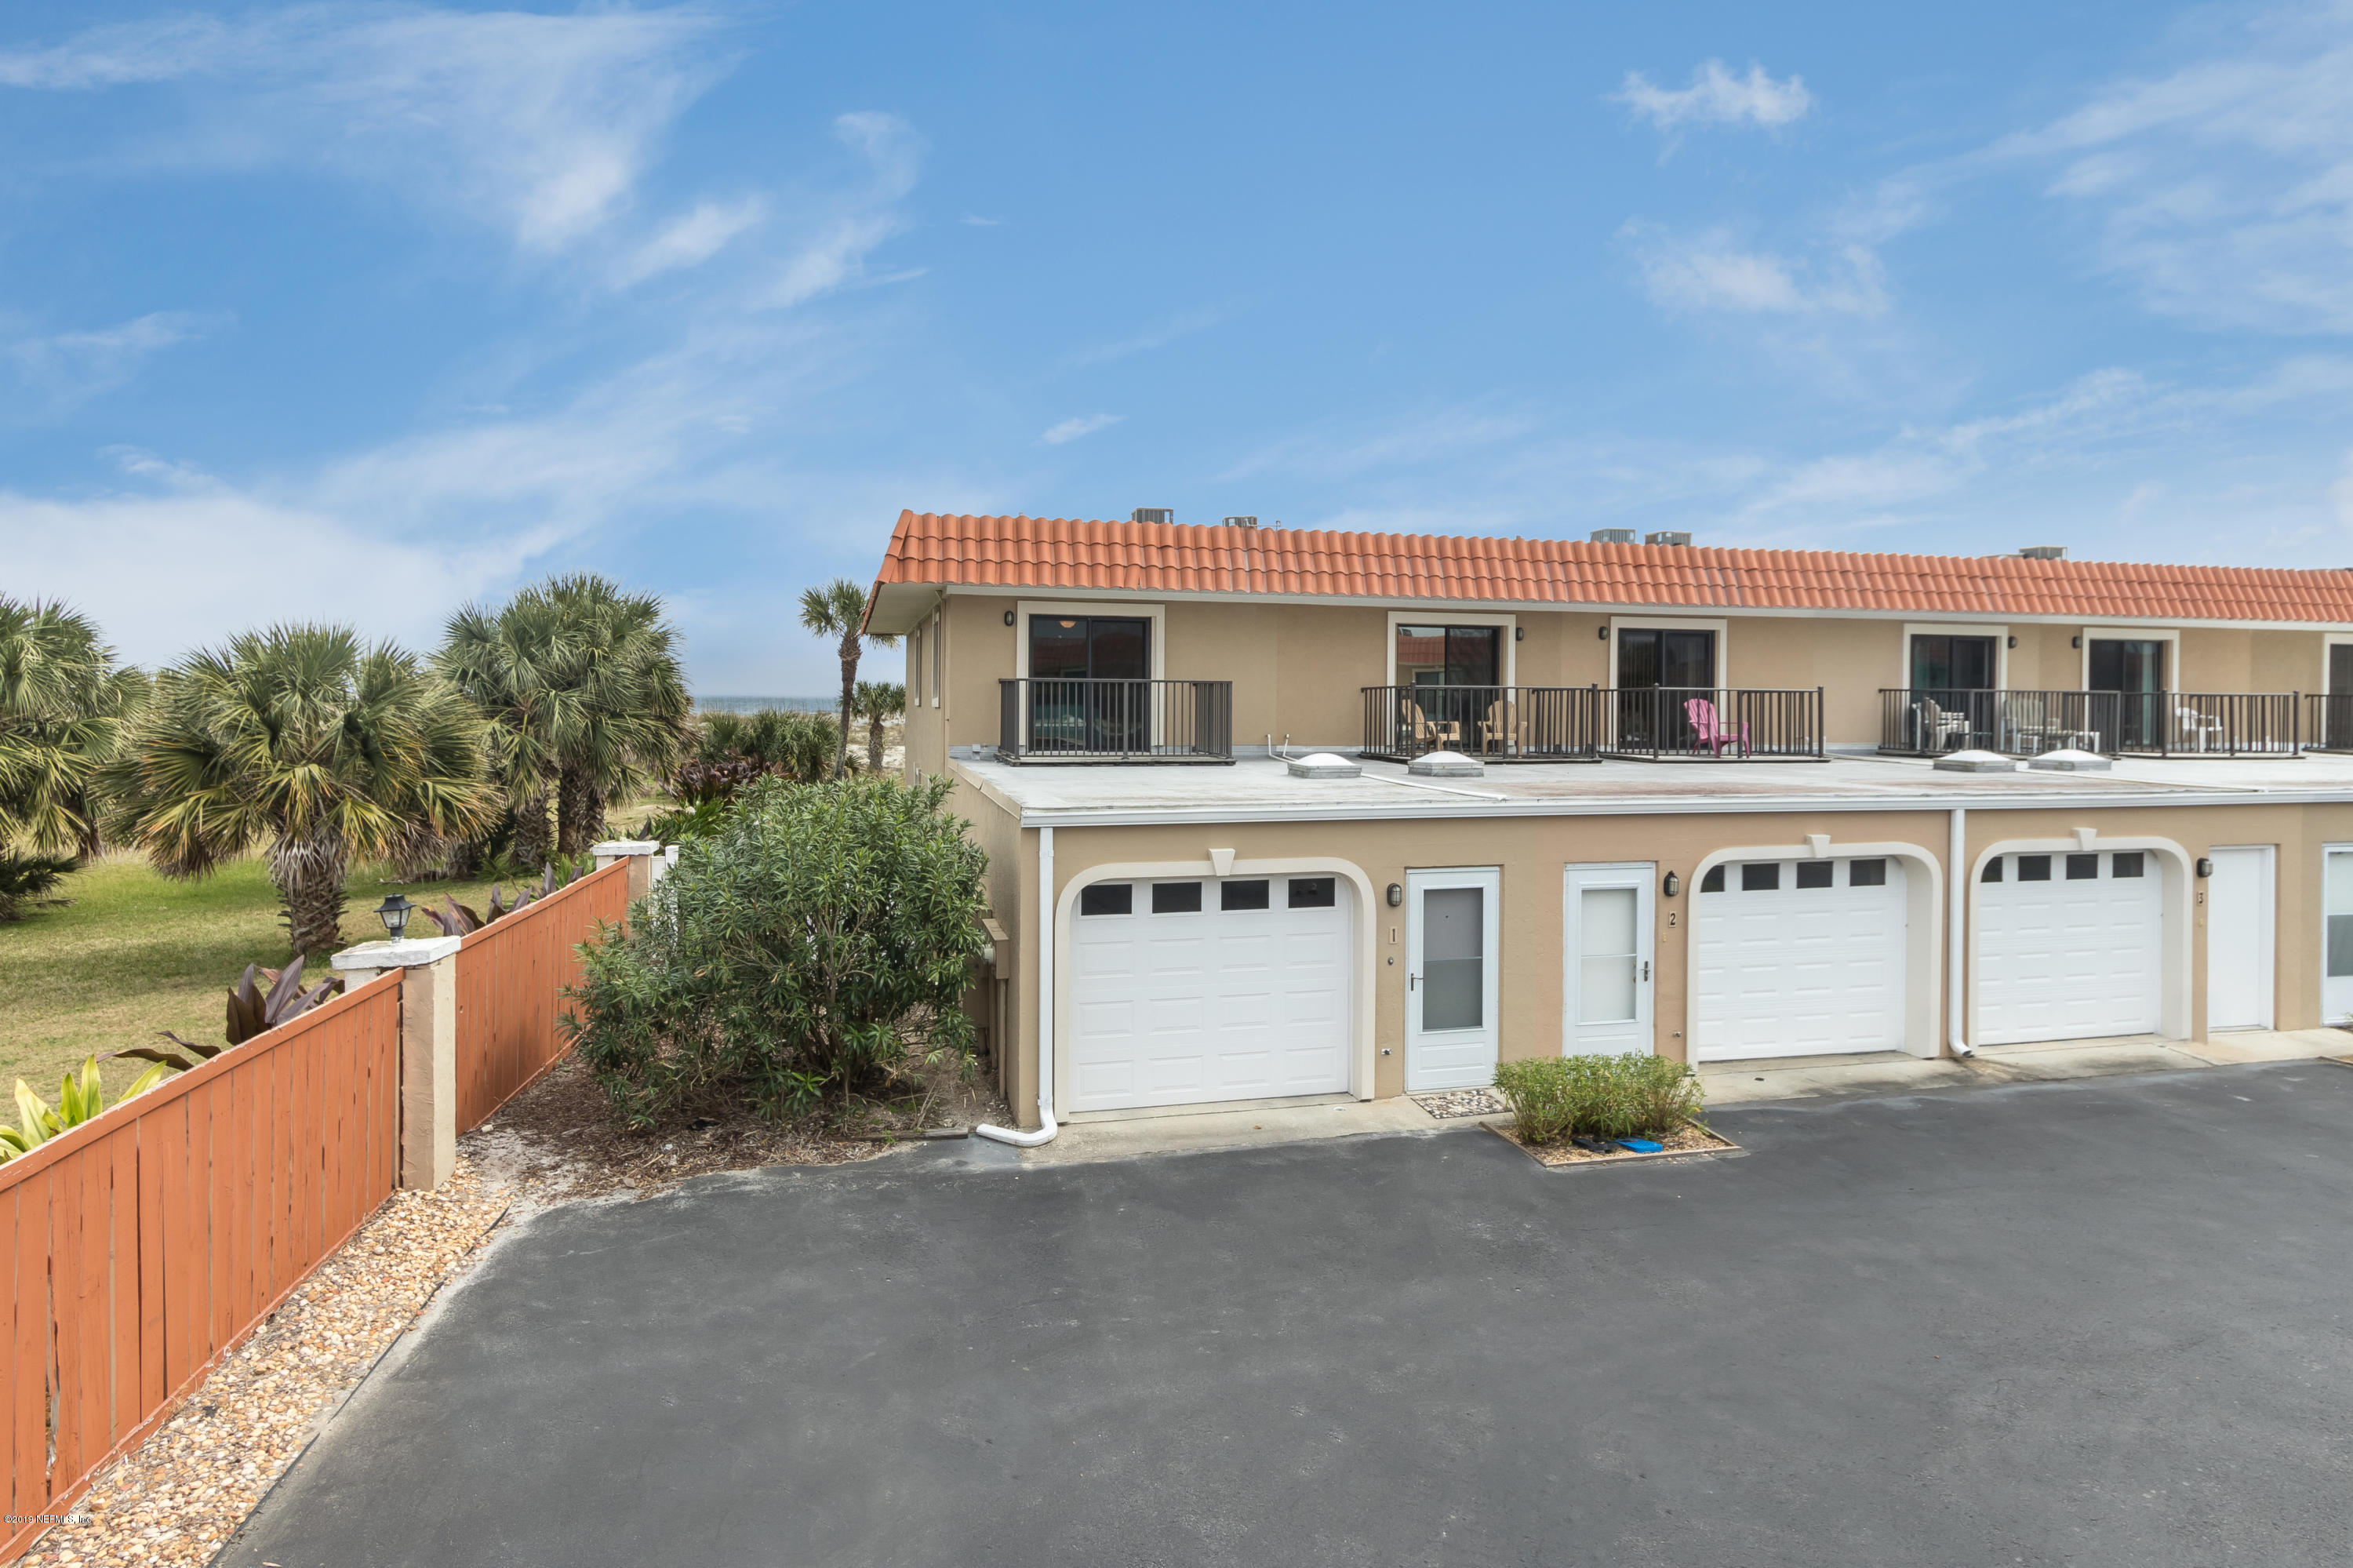 826 A1A BEACH, ST AUGUSTINE, FLORIDA 32080, 2 Bedrooms Bedrooms, ,2 BathroomsBathrooms,Residential - condos/townhomes,For sale,A1A BEACH,980708